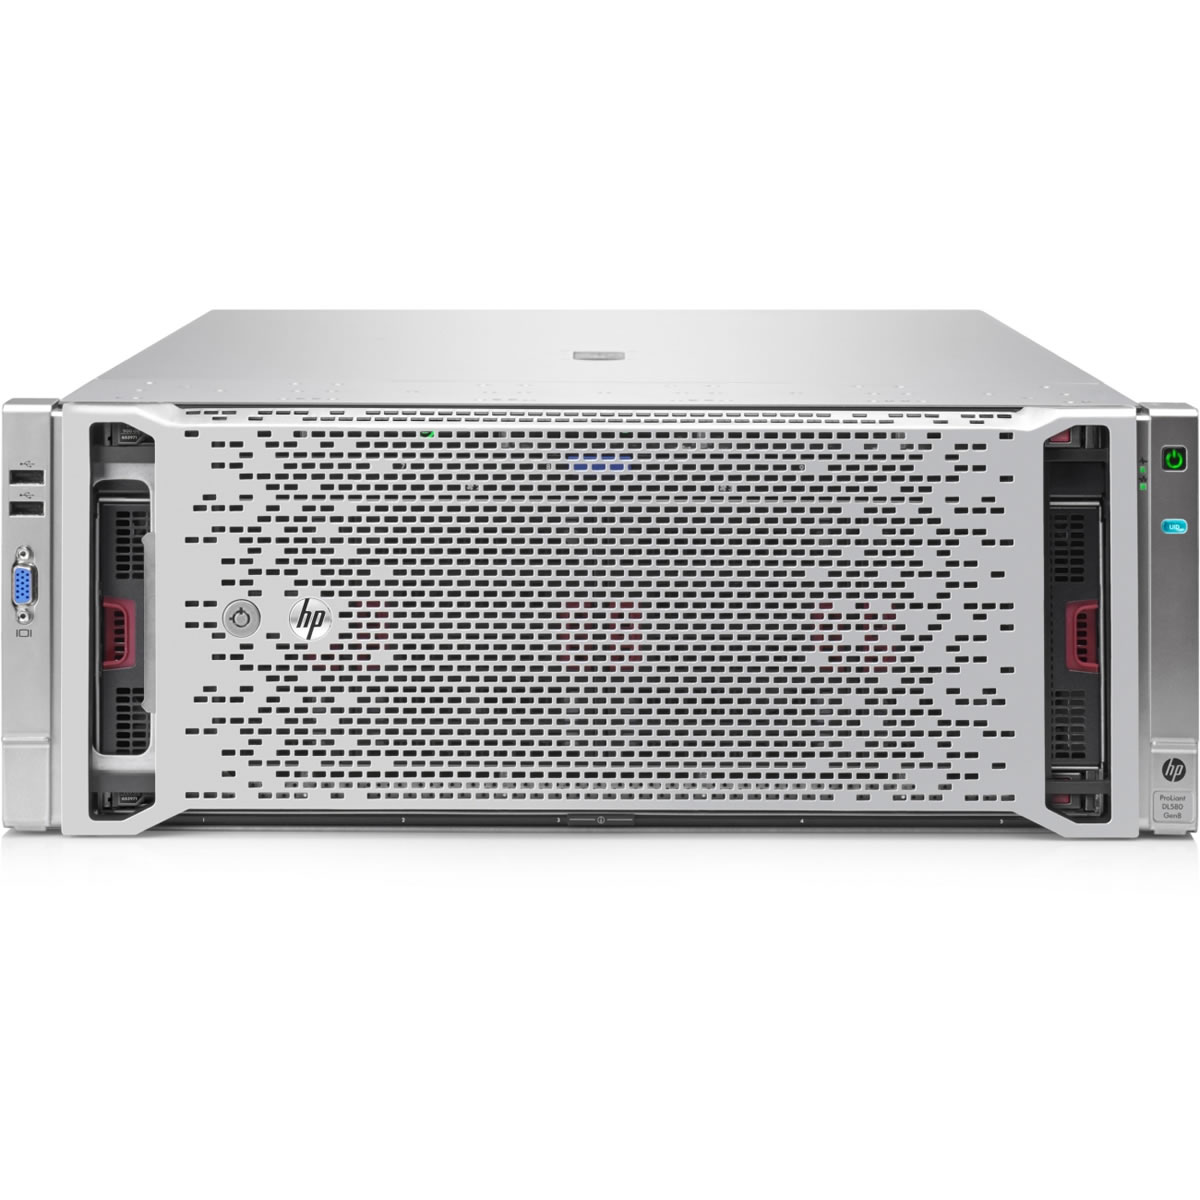 Сервер HP Proliant DL580 Gen9 Rack (4U) 793312-B21